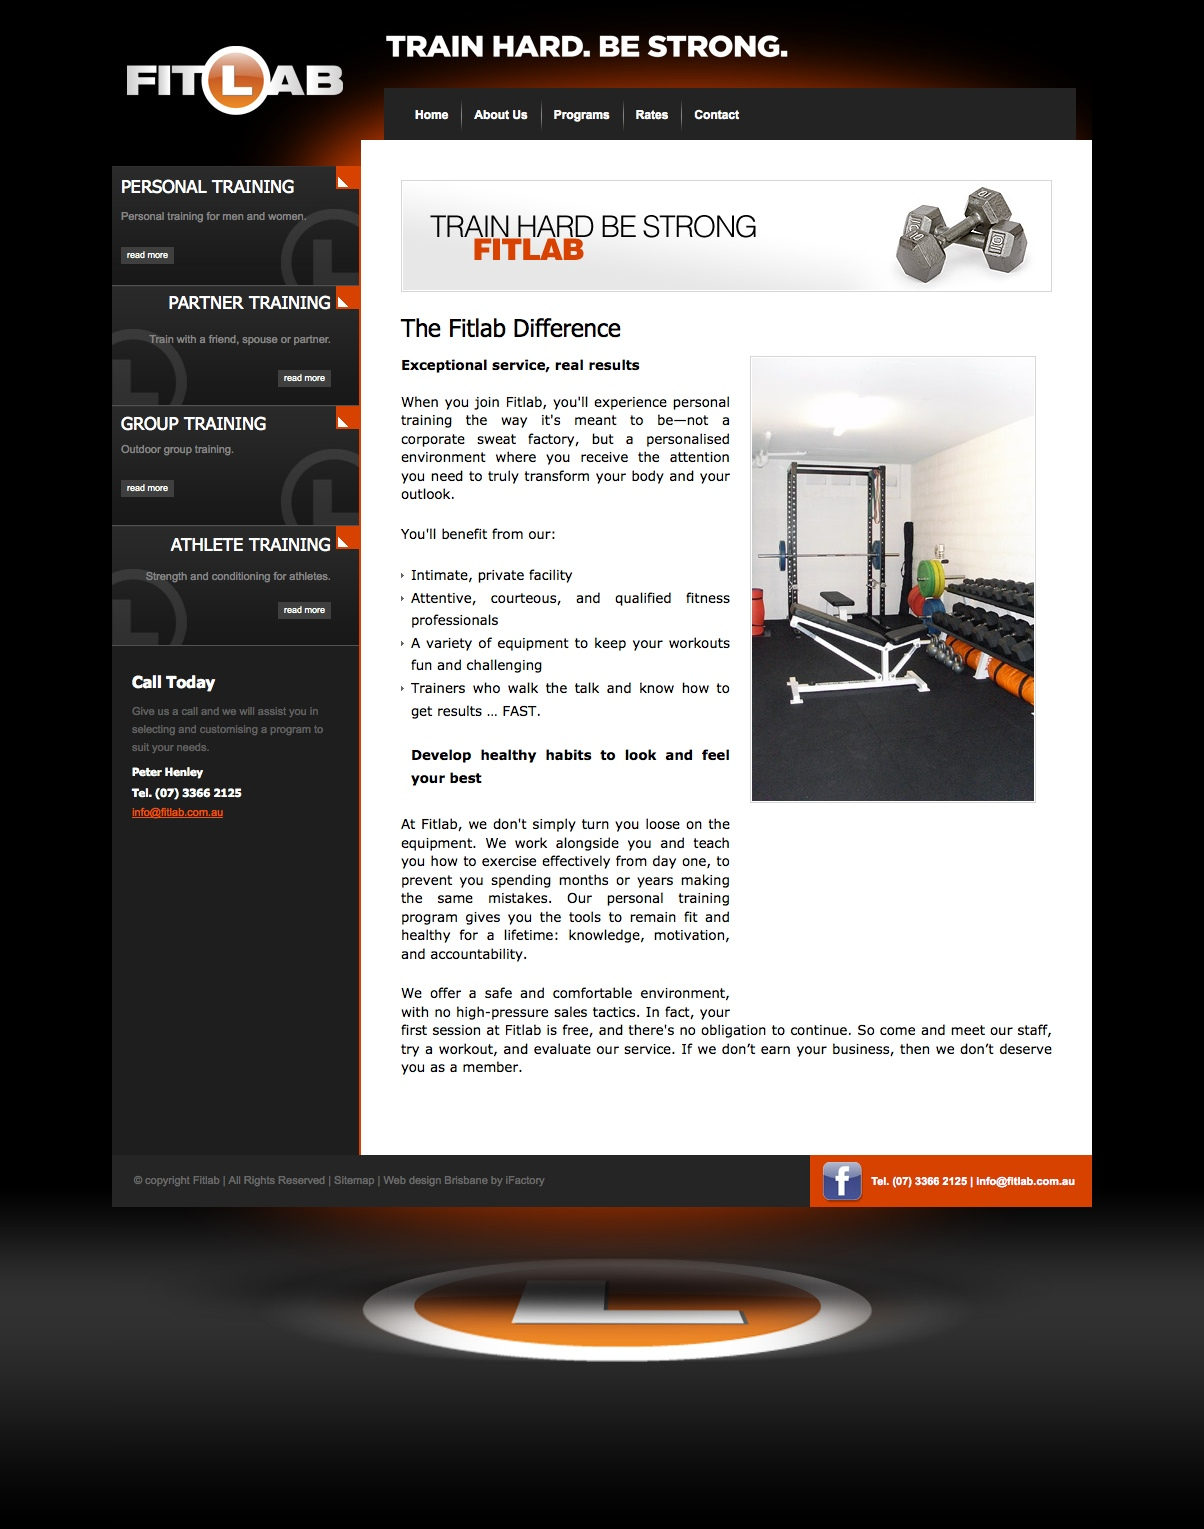 Web Content: Personal Training